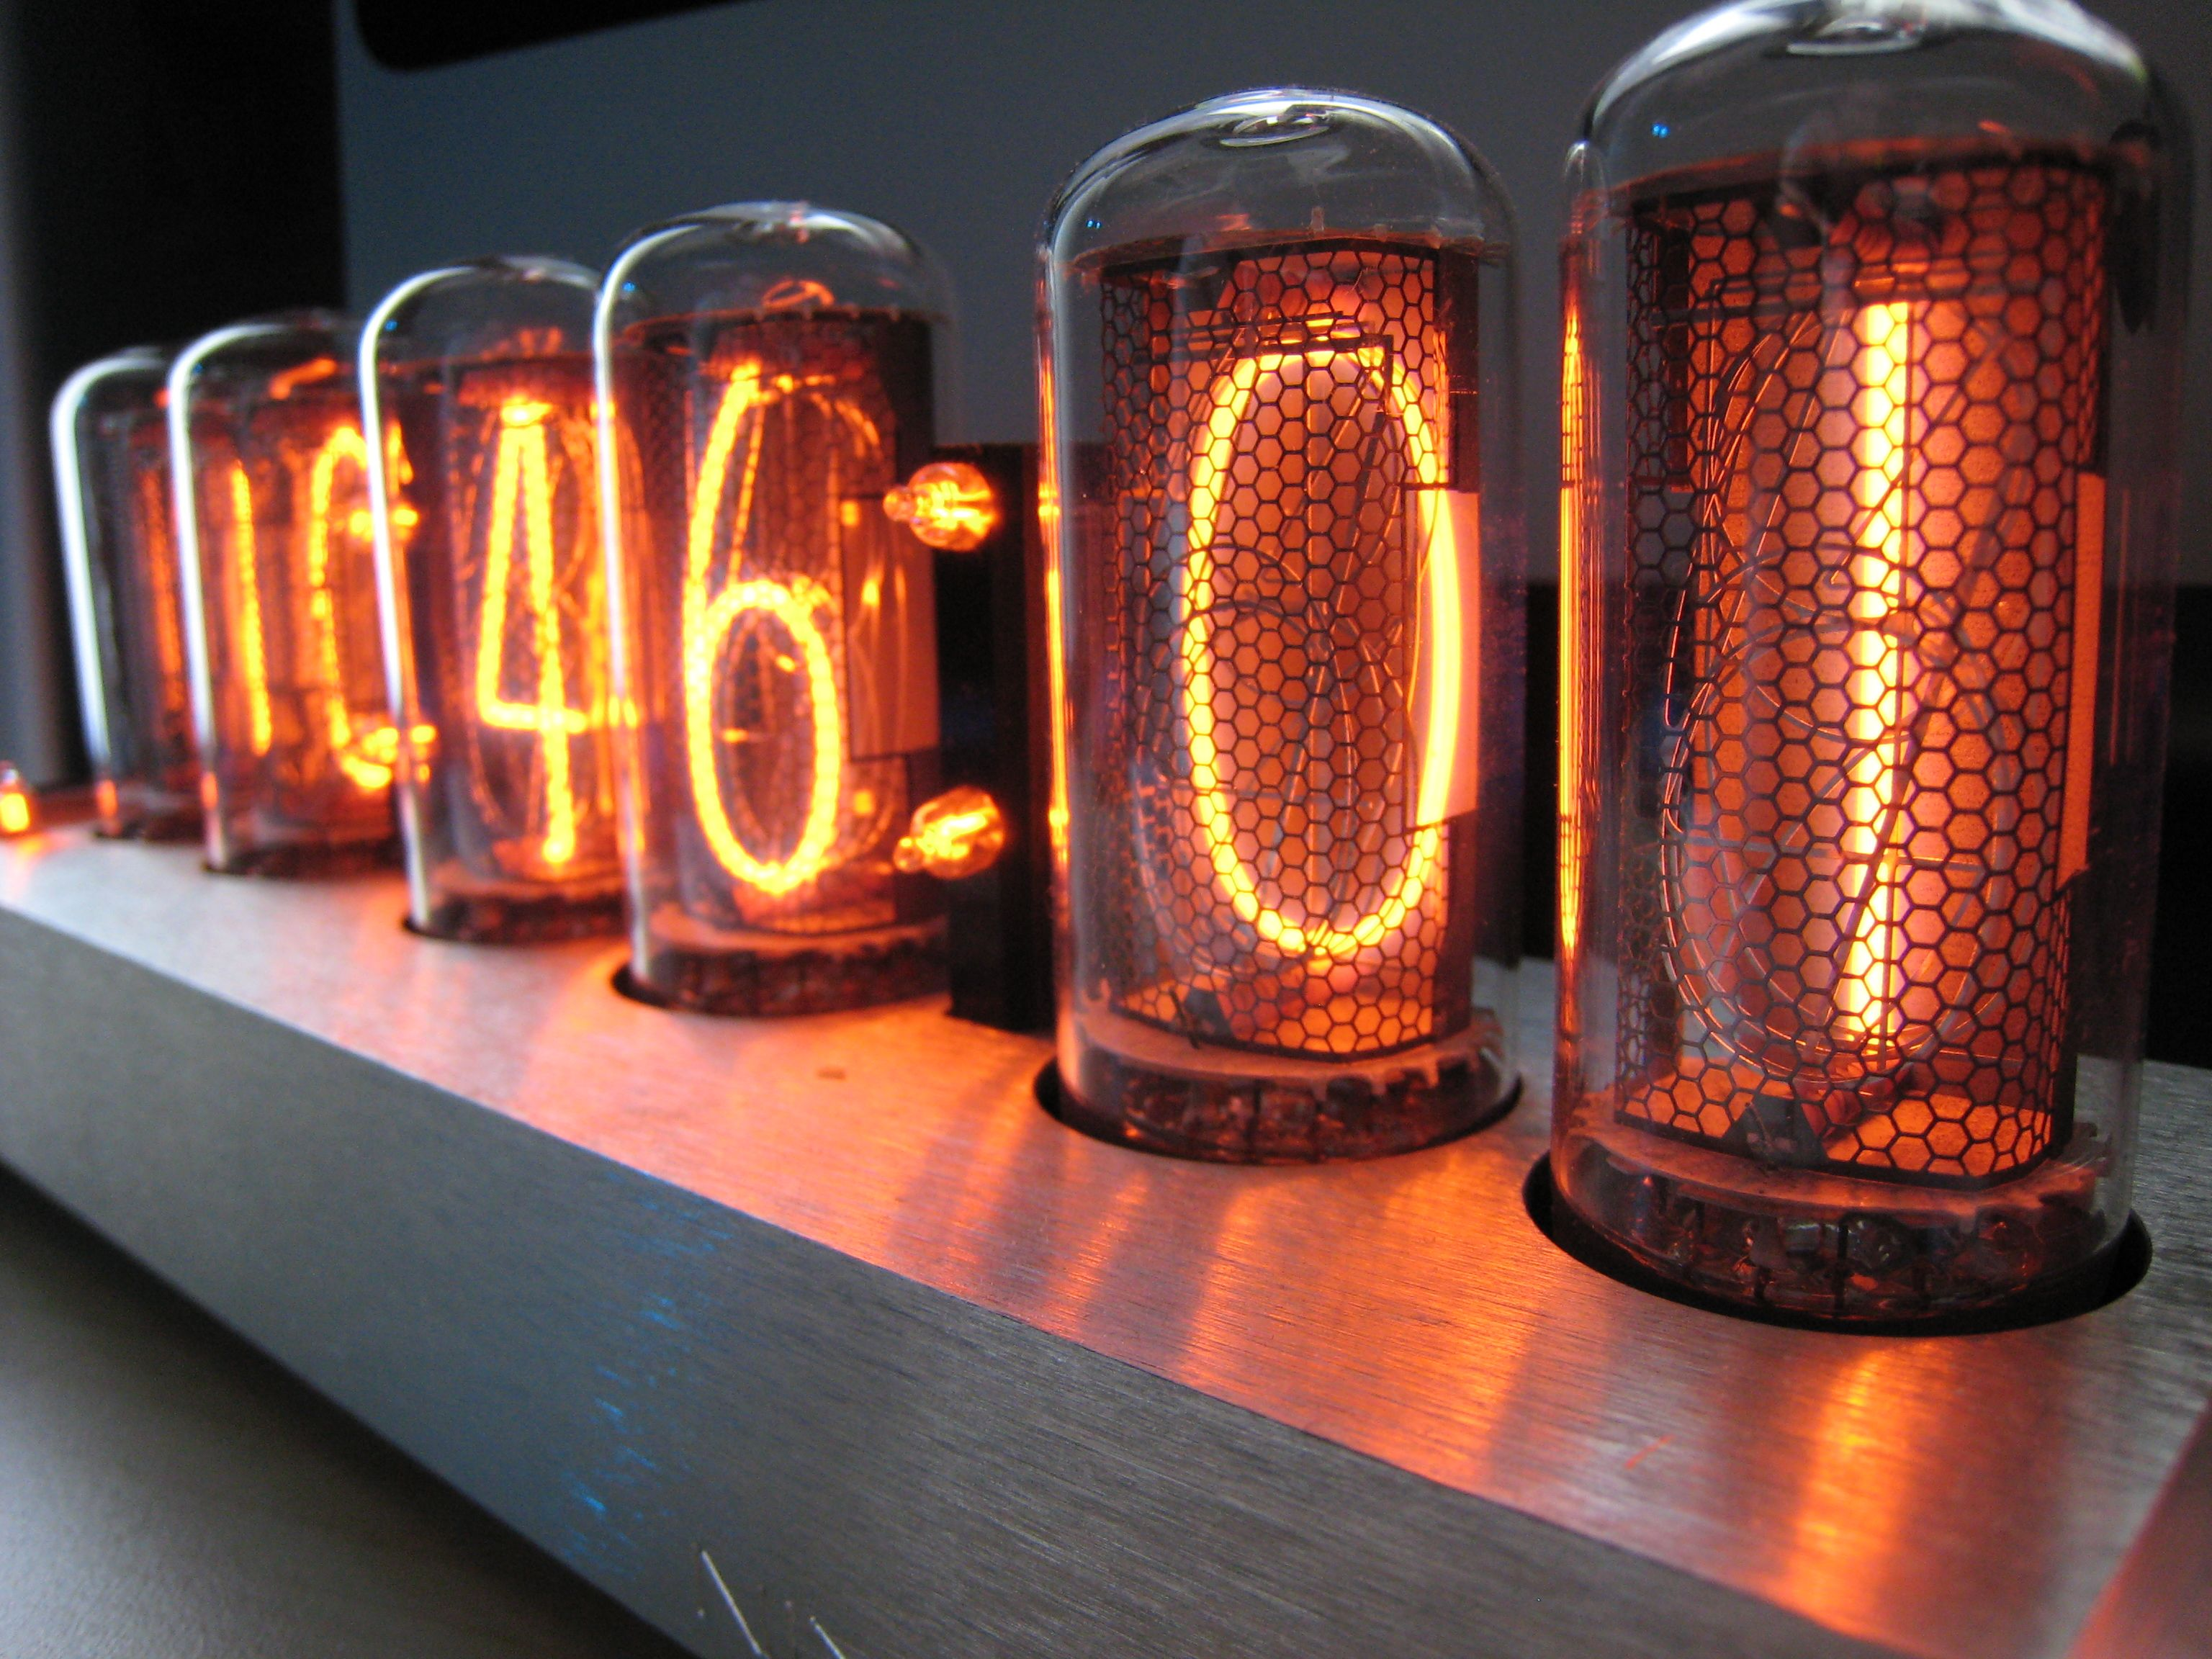 Hd Tube Nixie Tube Hd Wallpaper Background Image 3072x2304